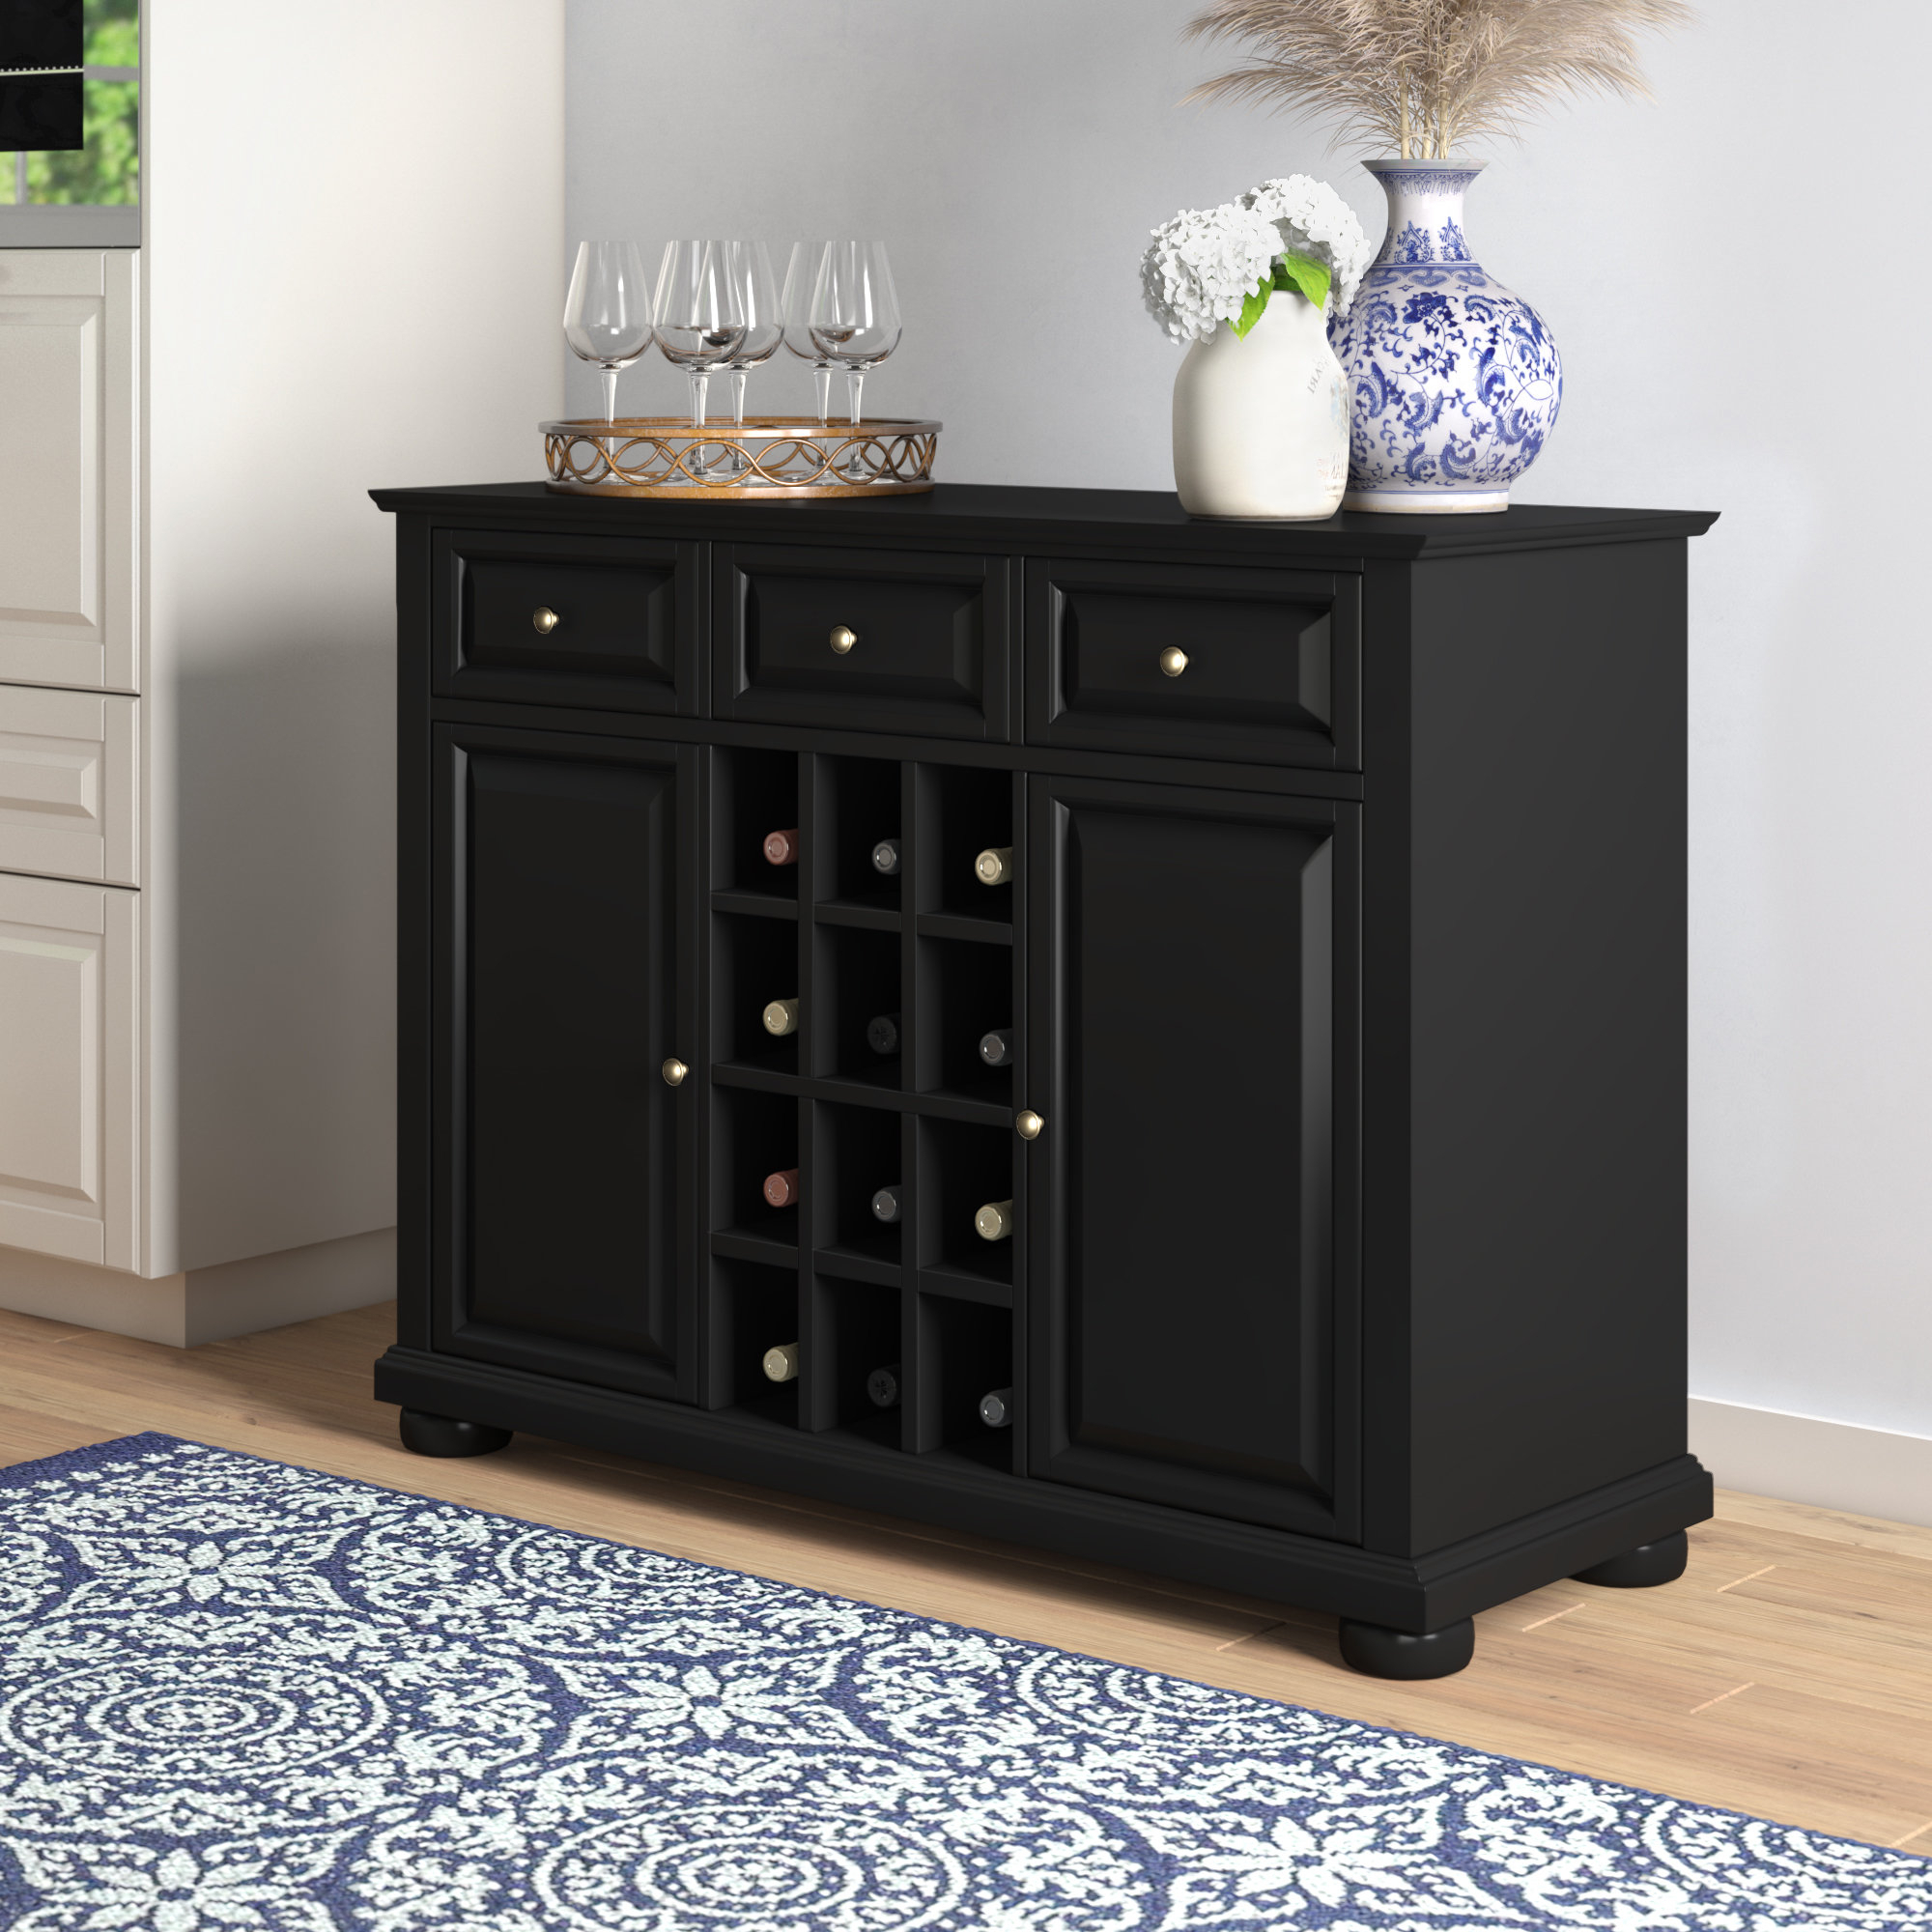 Dark Cherry Buffet You'll Love In 2019 | Wayfair Pertaining To Medium Cherry Buffets With Wood Top (View 12 of 20)